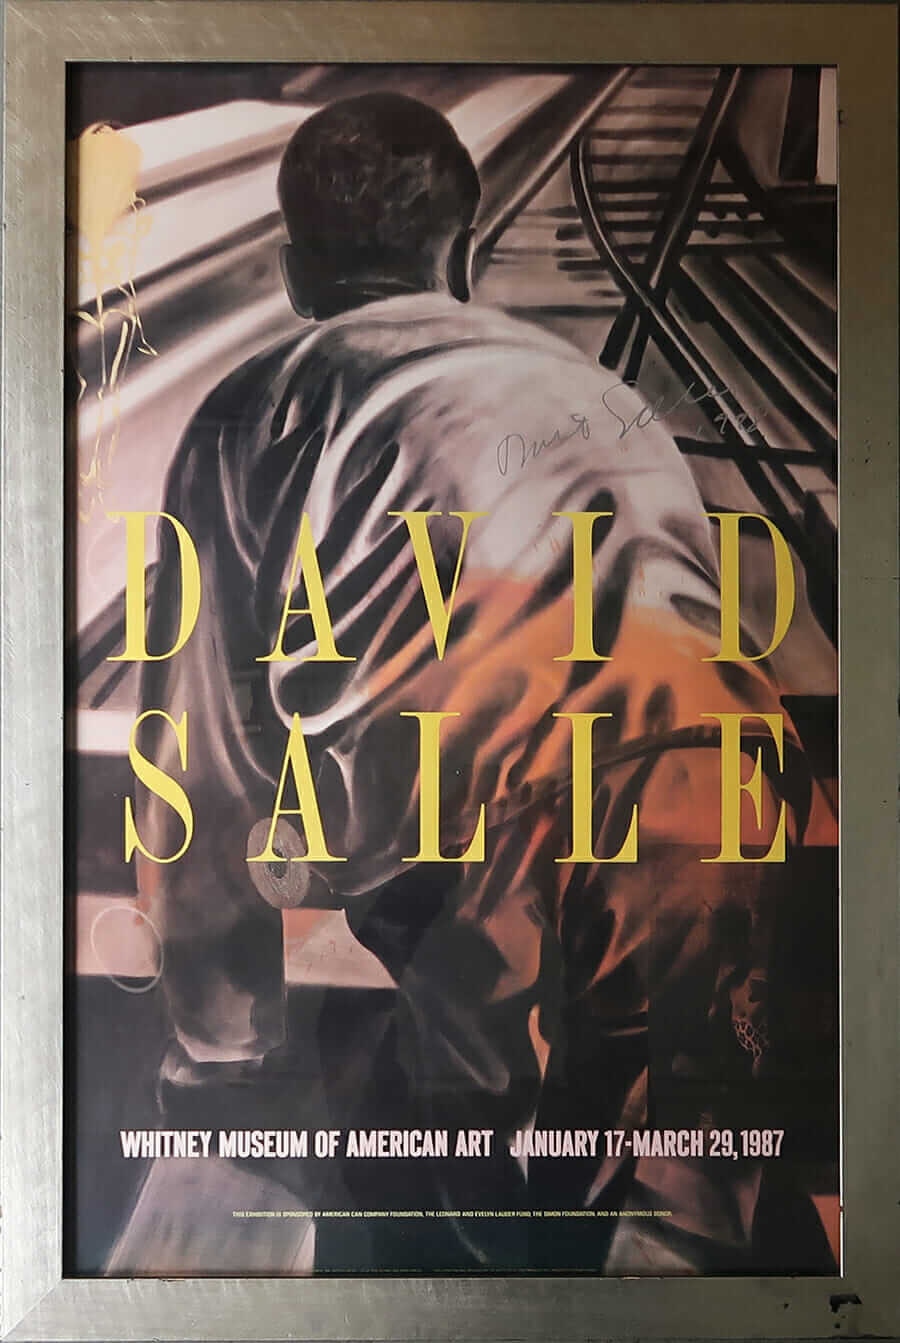 David Salle Whitney Museum of American Art January 17-March 29, 1987